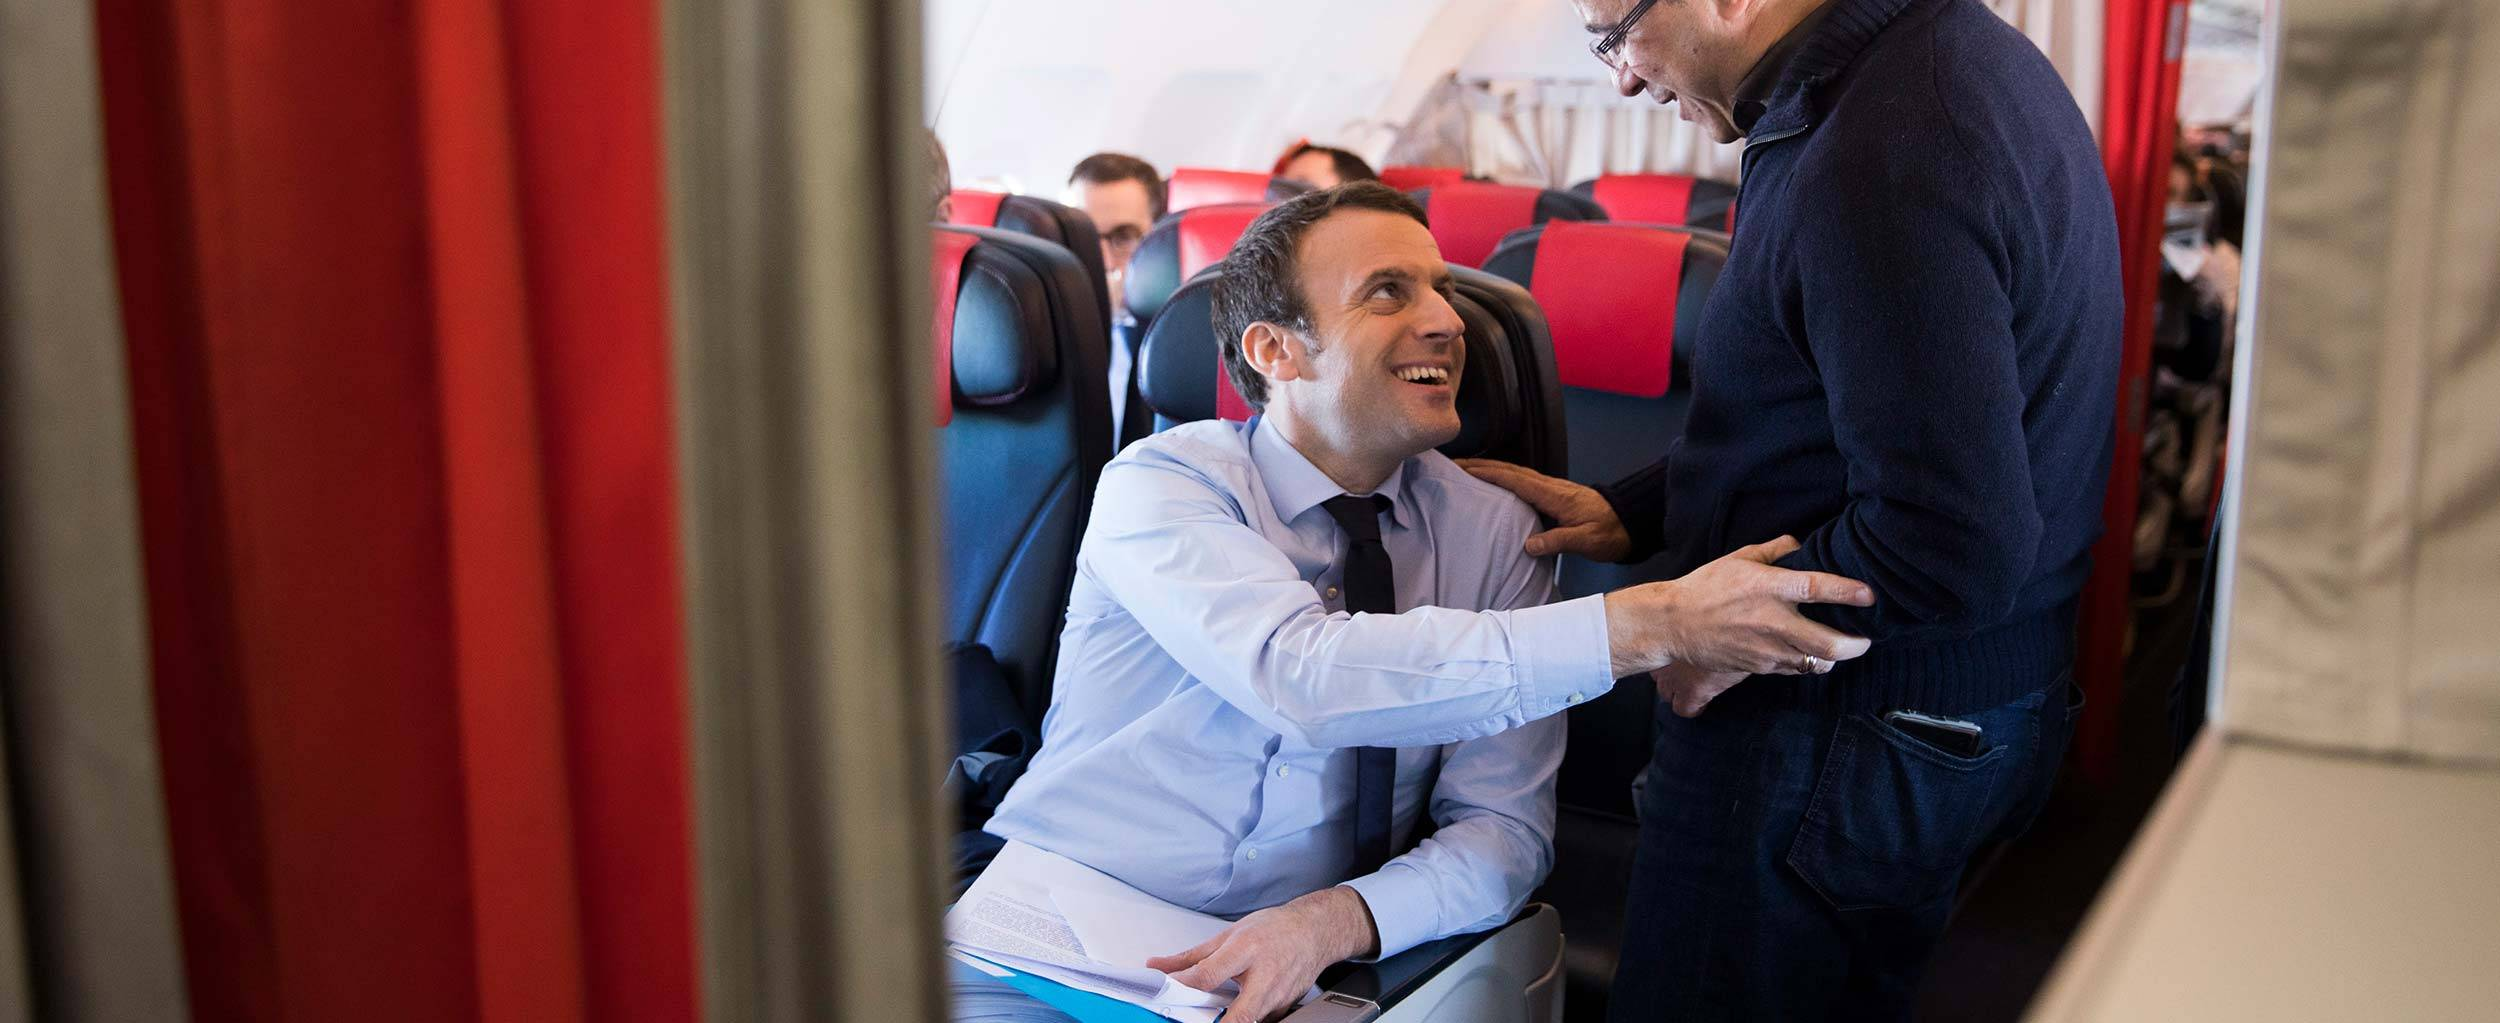 02-affaires-internationales-emmanuel-macron-voyage-avion